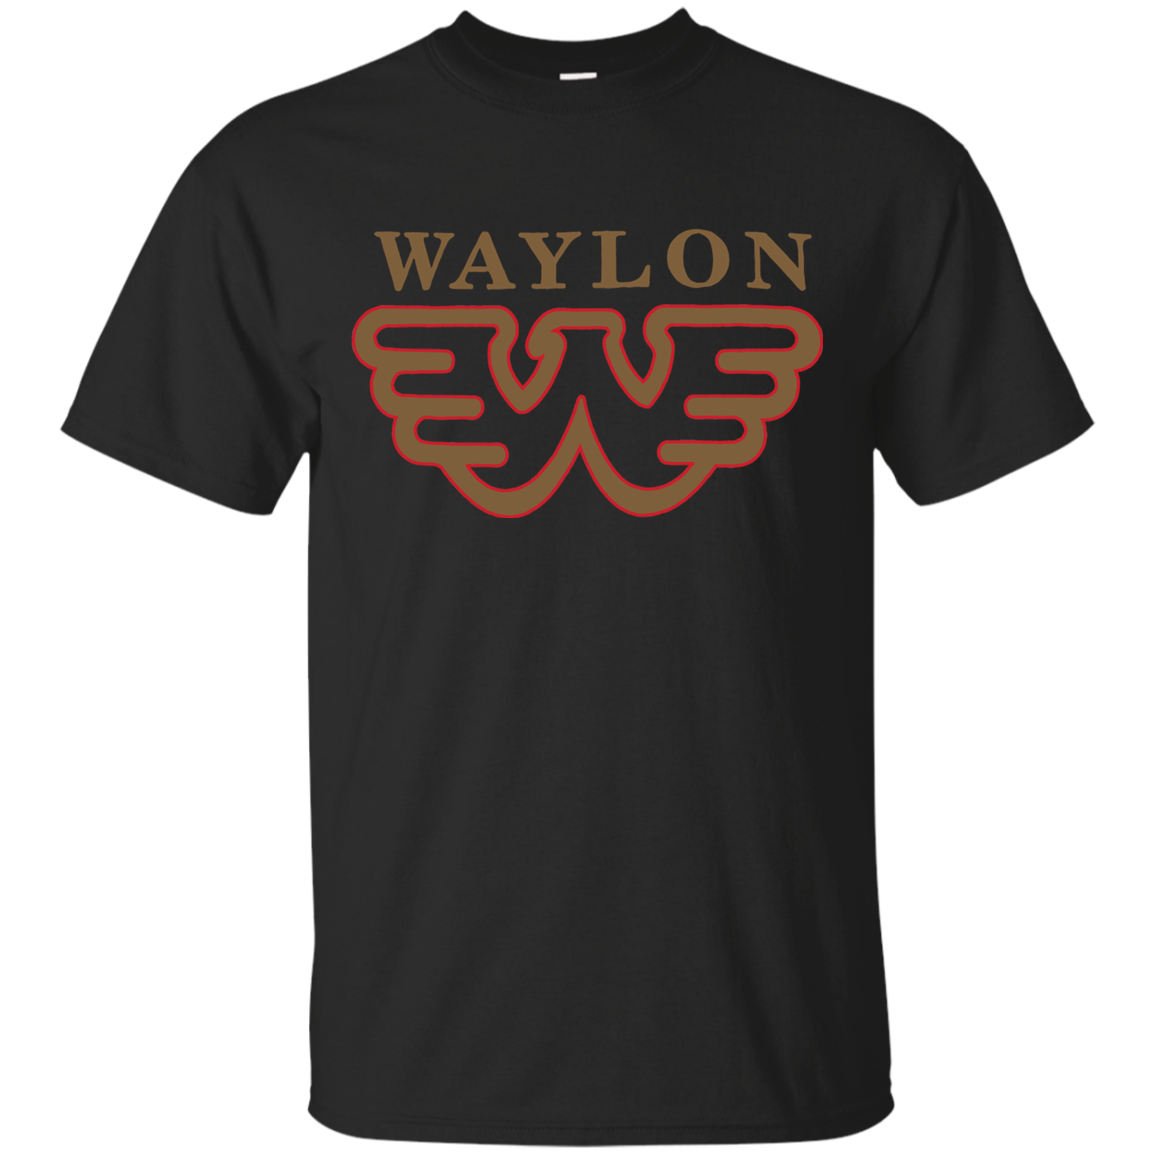 26 WAYLON JENNINGS FLYING W LOGO SHIRT